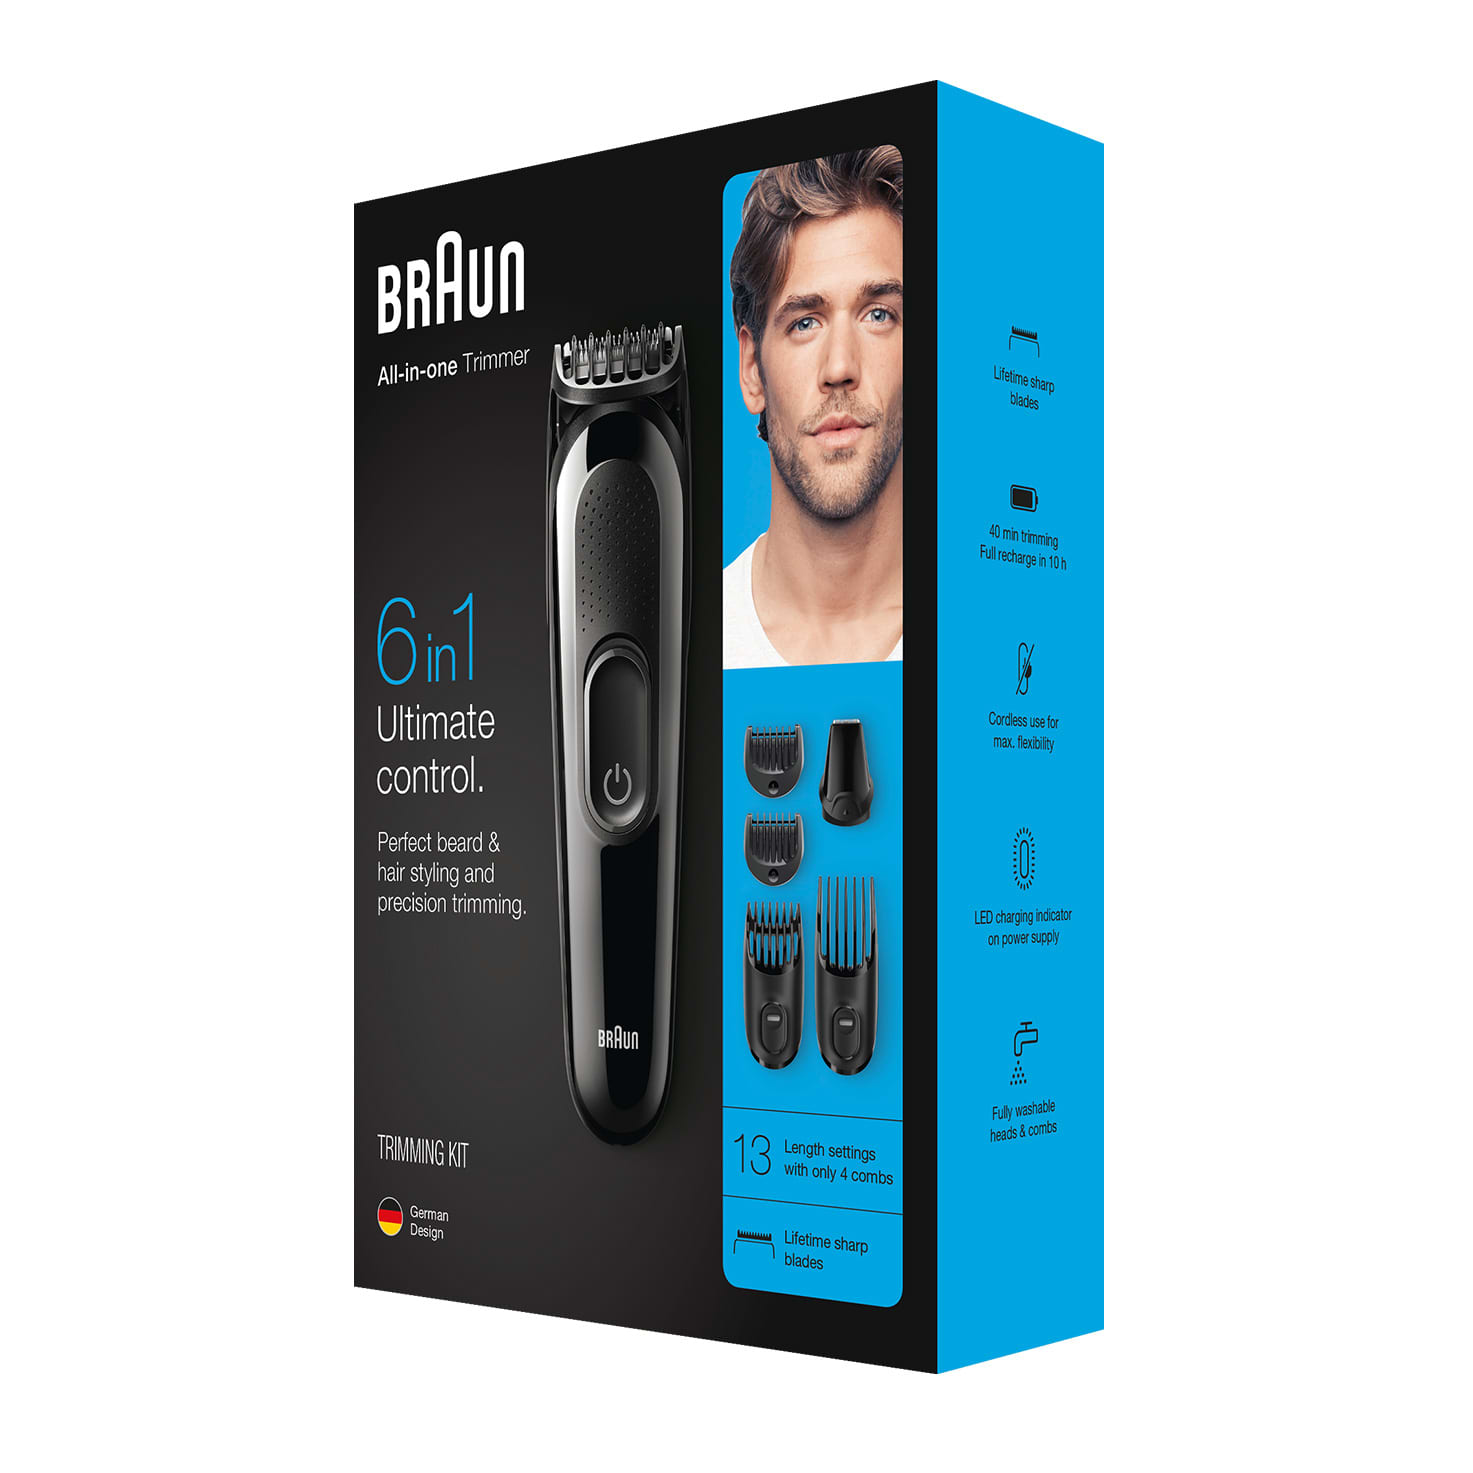 Braun All-in-one trimmer MGK3025